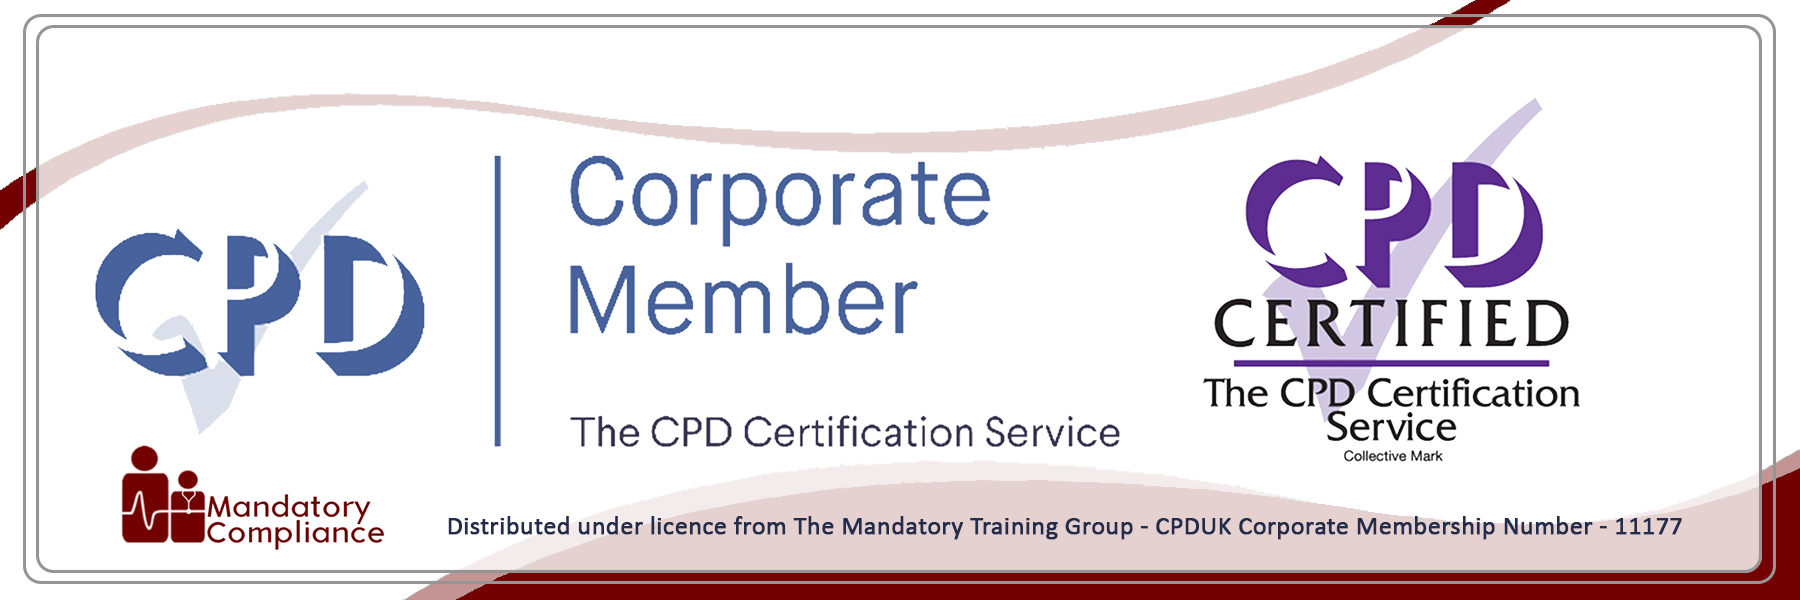 Paediatric First Aid - Level 3 - Online Learning Courses - E-Learning Courses - Mandatory Compliance UK -